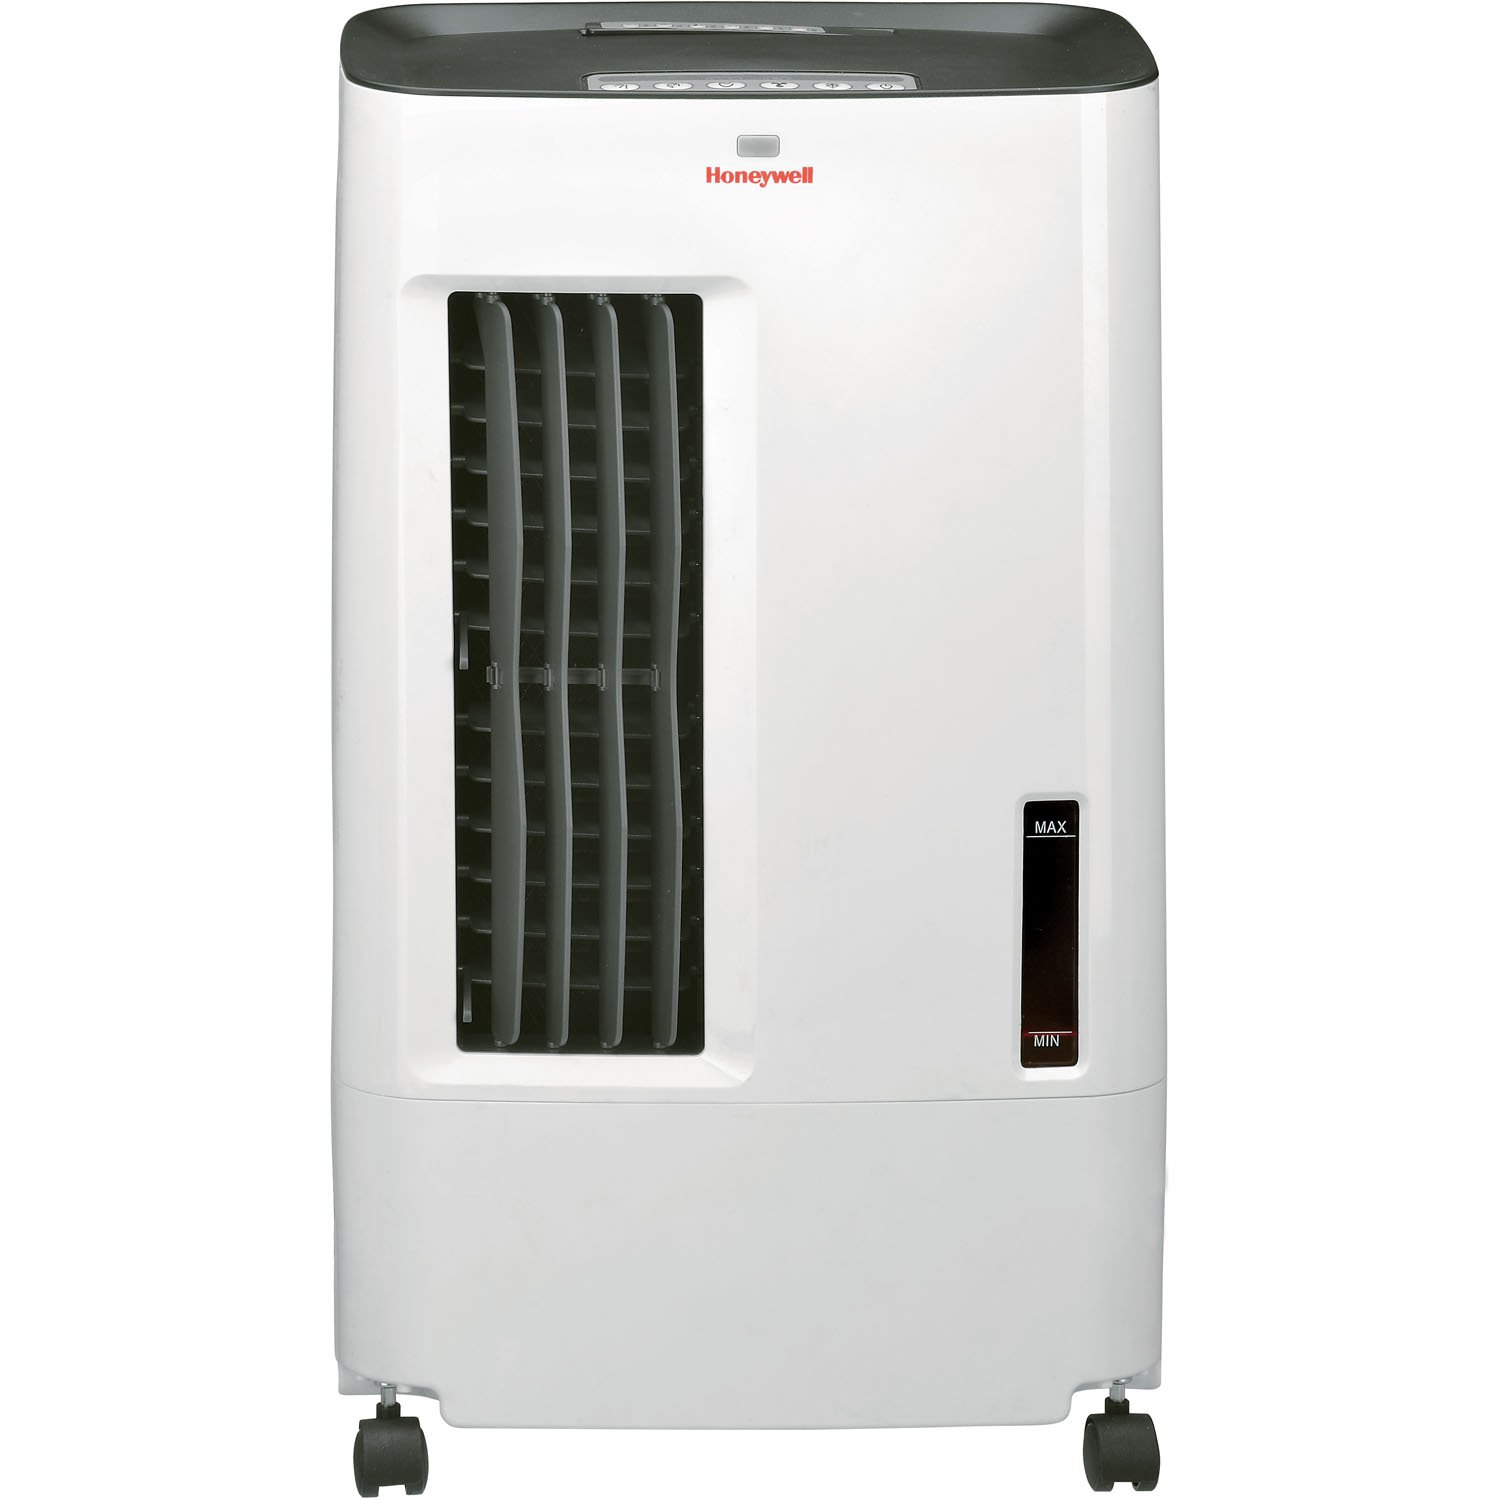 Honeywell CSO71AE 176 CFM Indoor Evaporative Air Cooler (Swamp Cooler) with Remote Control in White/Gray by Honeywell